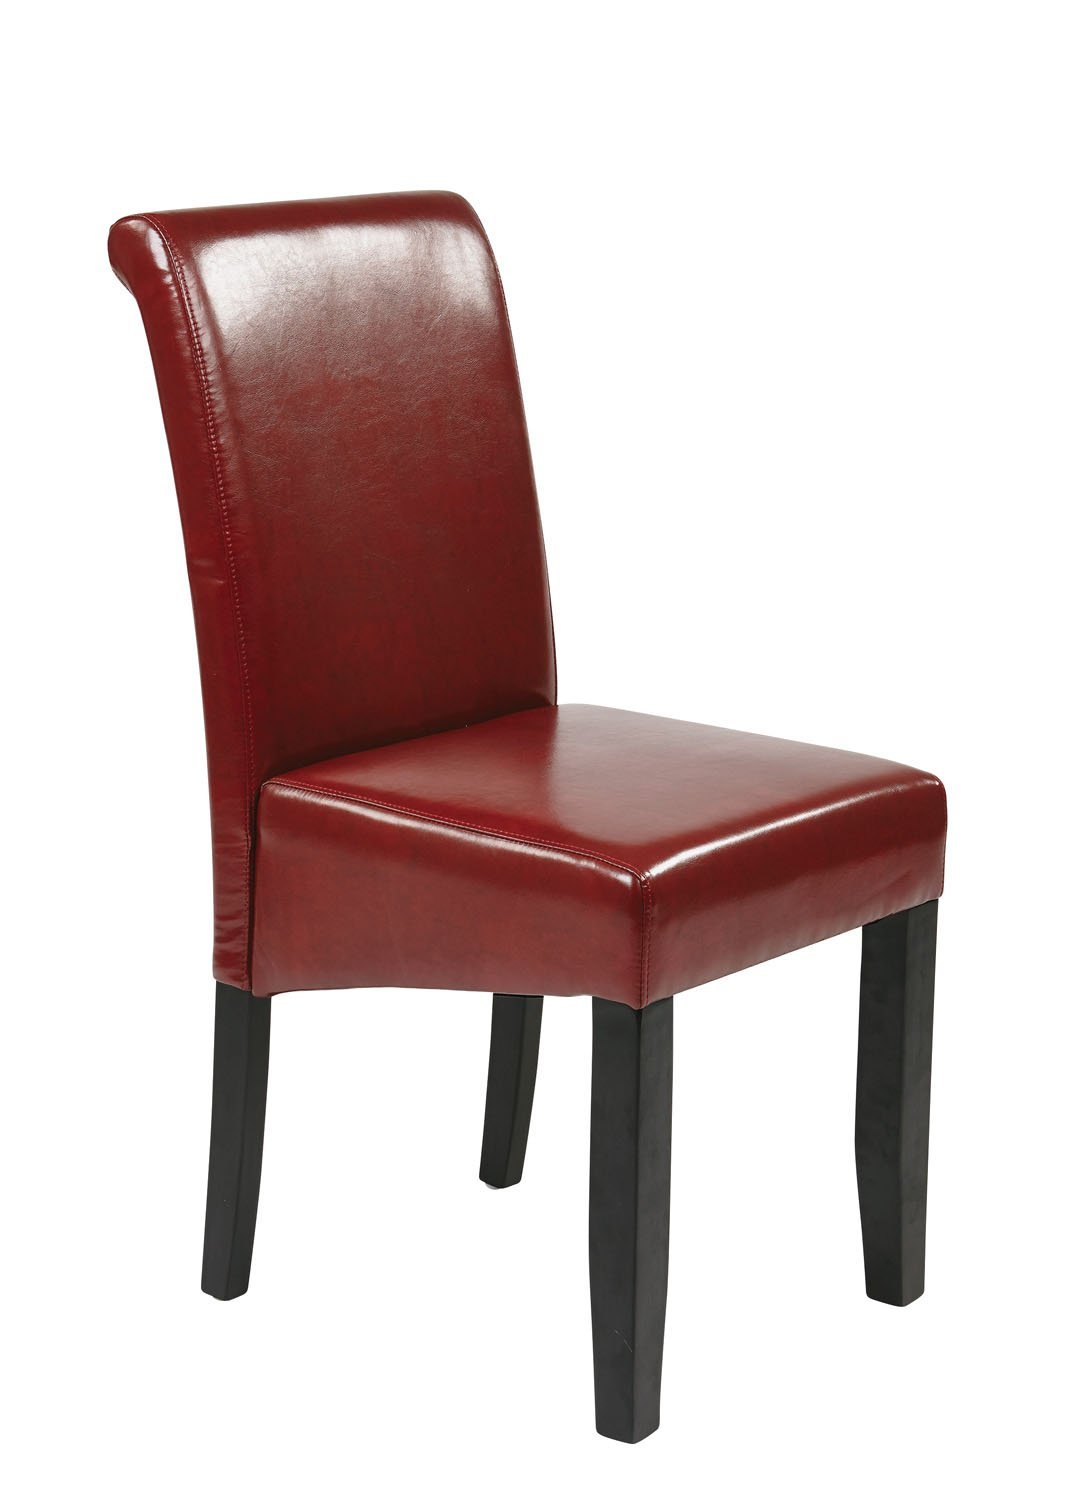 Burgundy Leather Dining Chairs Chair Pads Amp Cushions